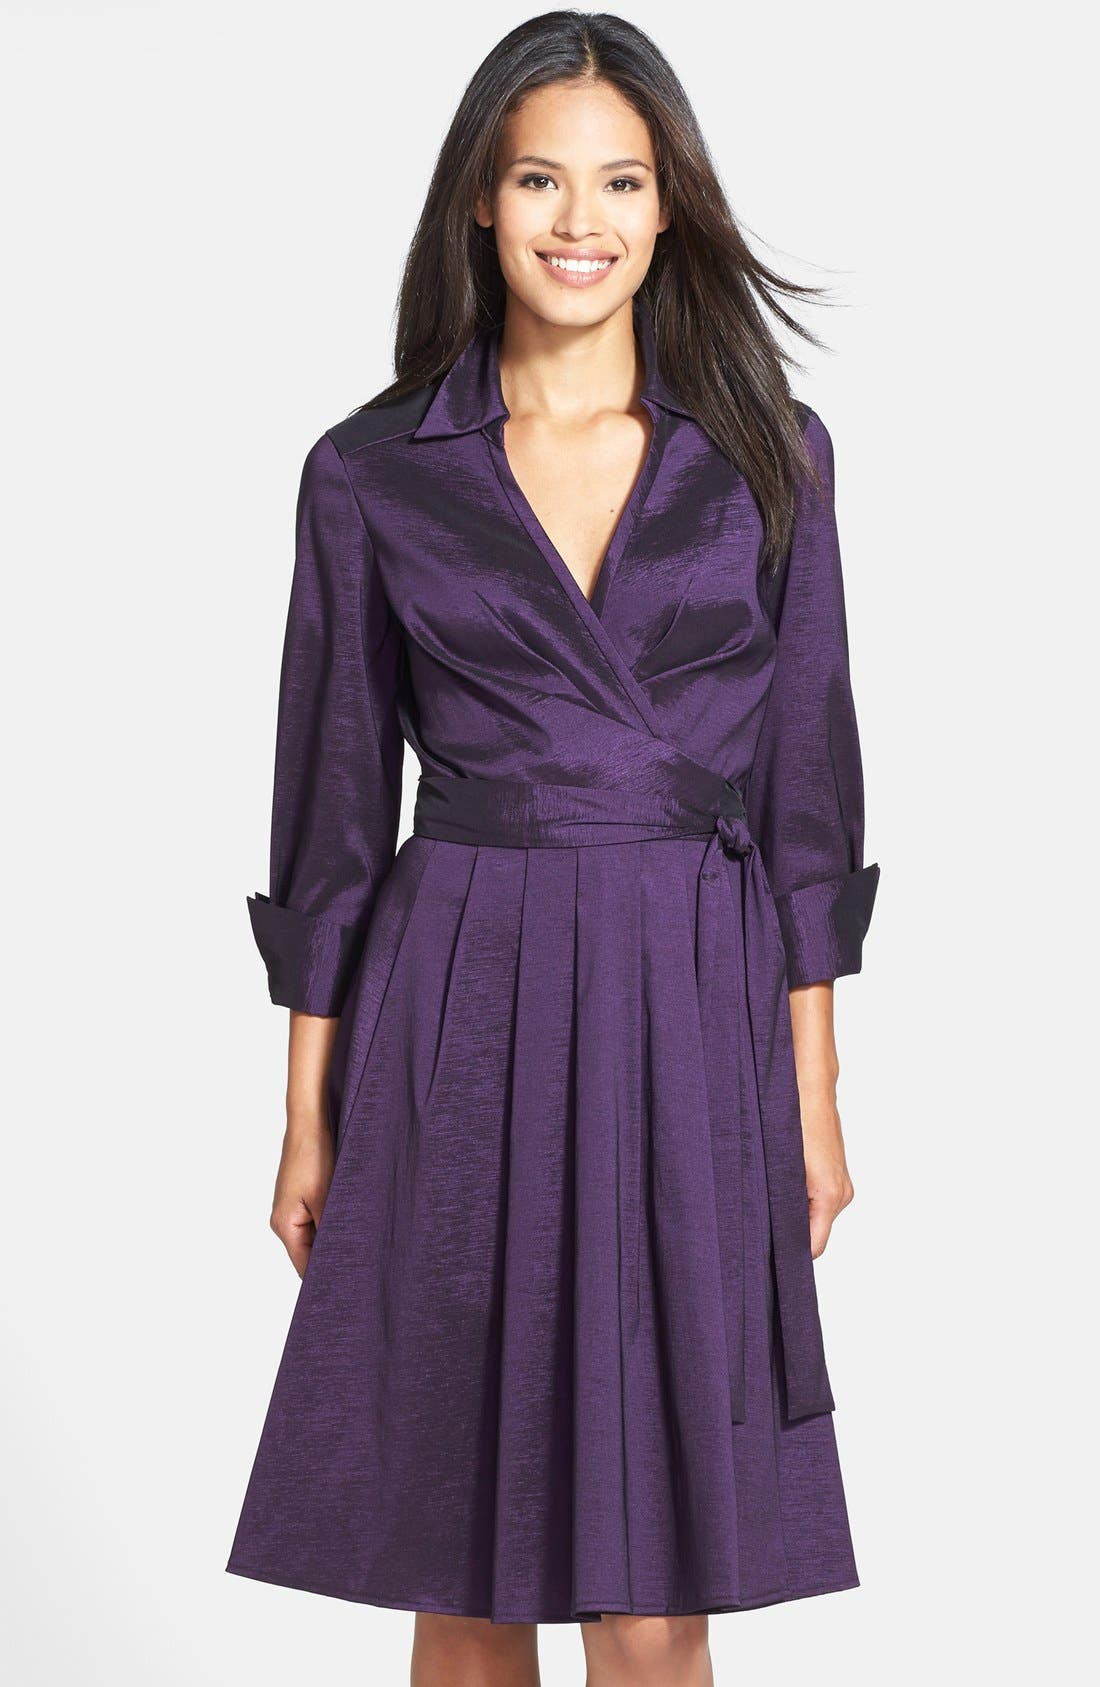 Taffeta Wrap Dress,                             Main thumbnail 1, color,                             502